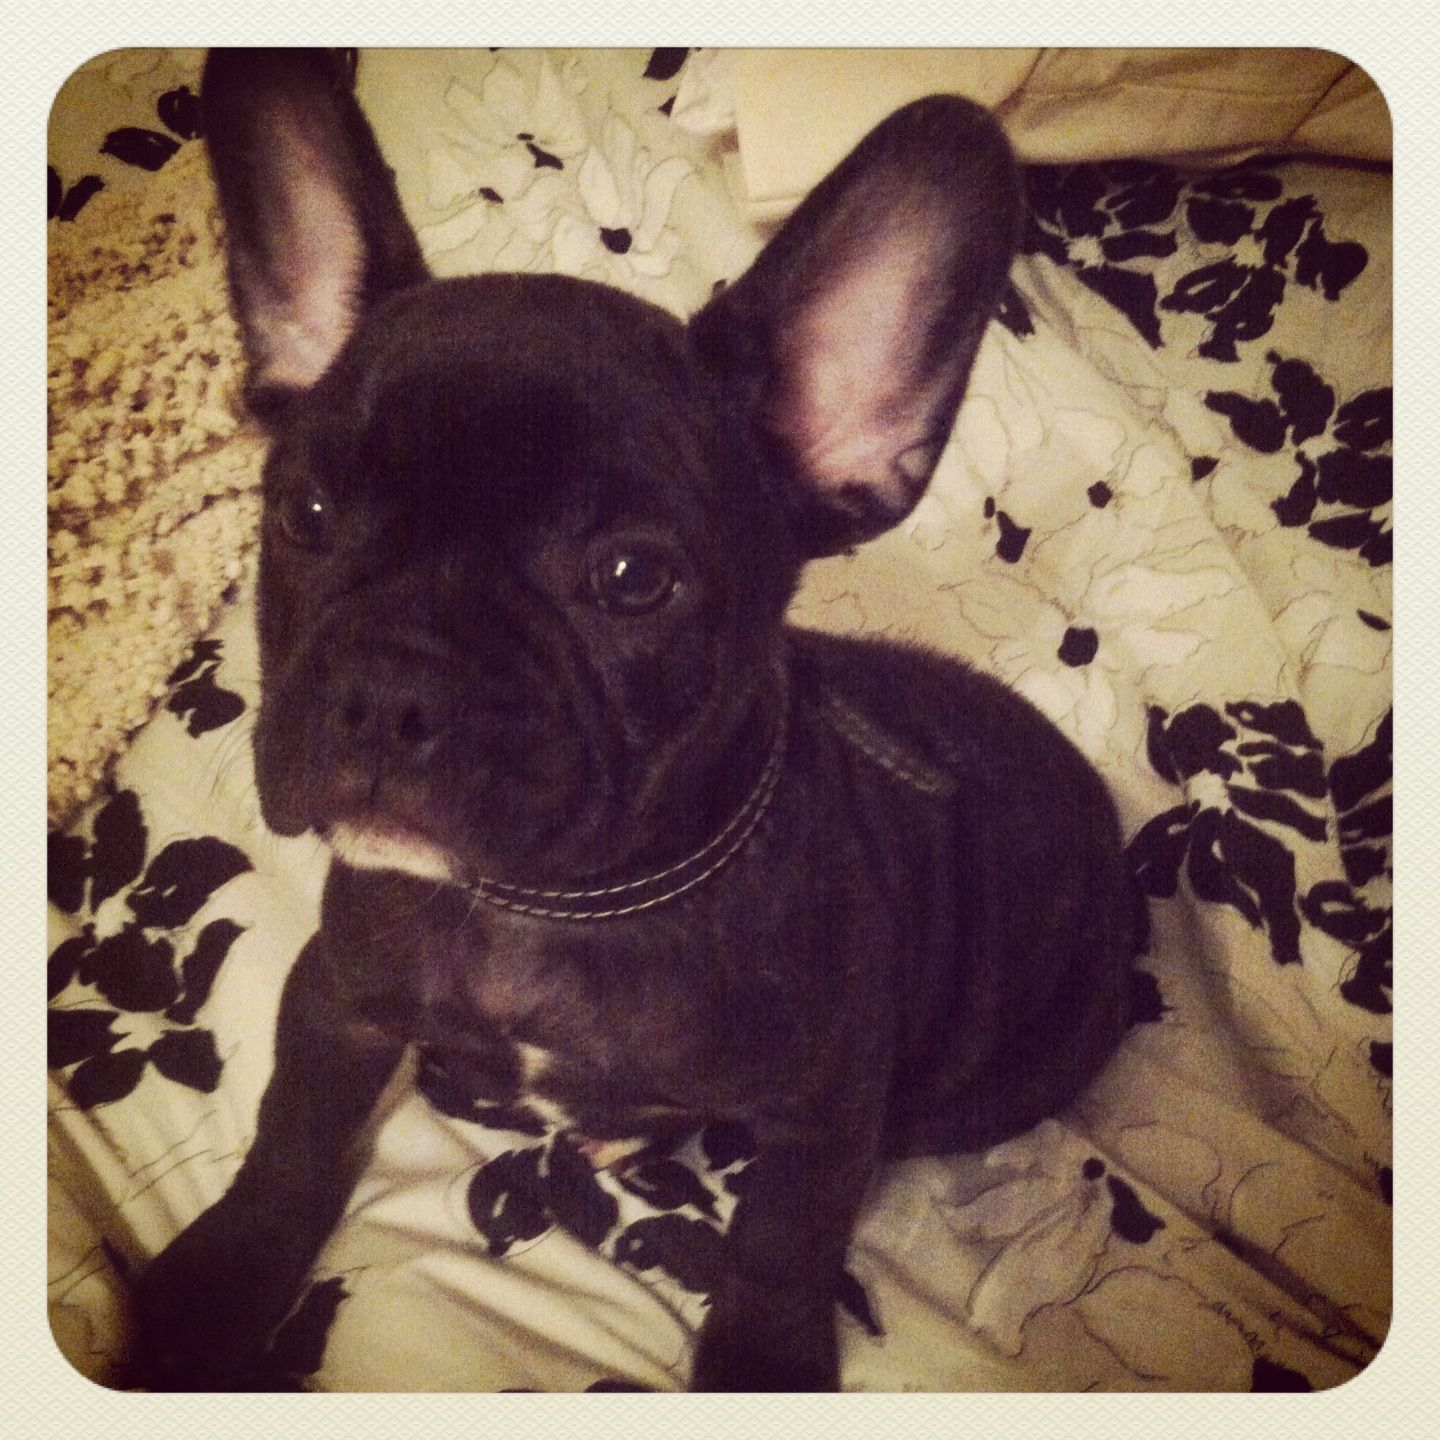 I will own this dog one day french bulldog